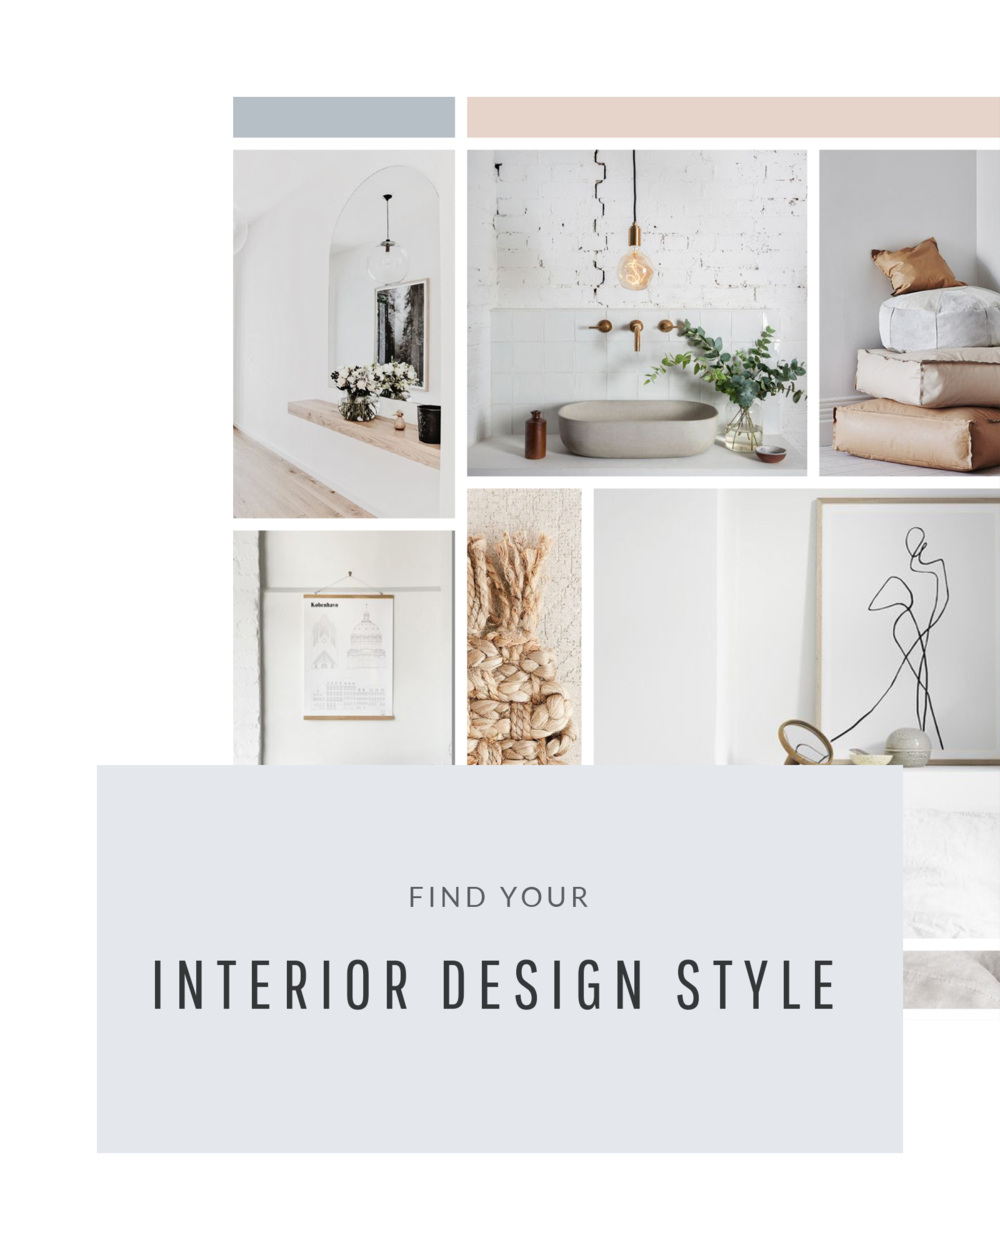 Charmant FIND YOUR INTERIOR DESIGN STYLE